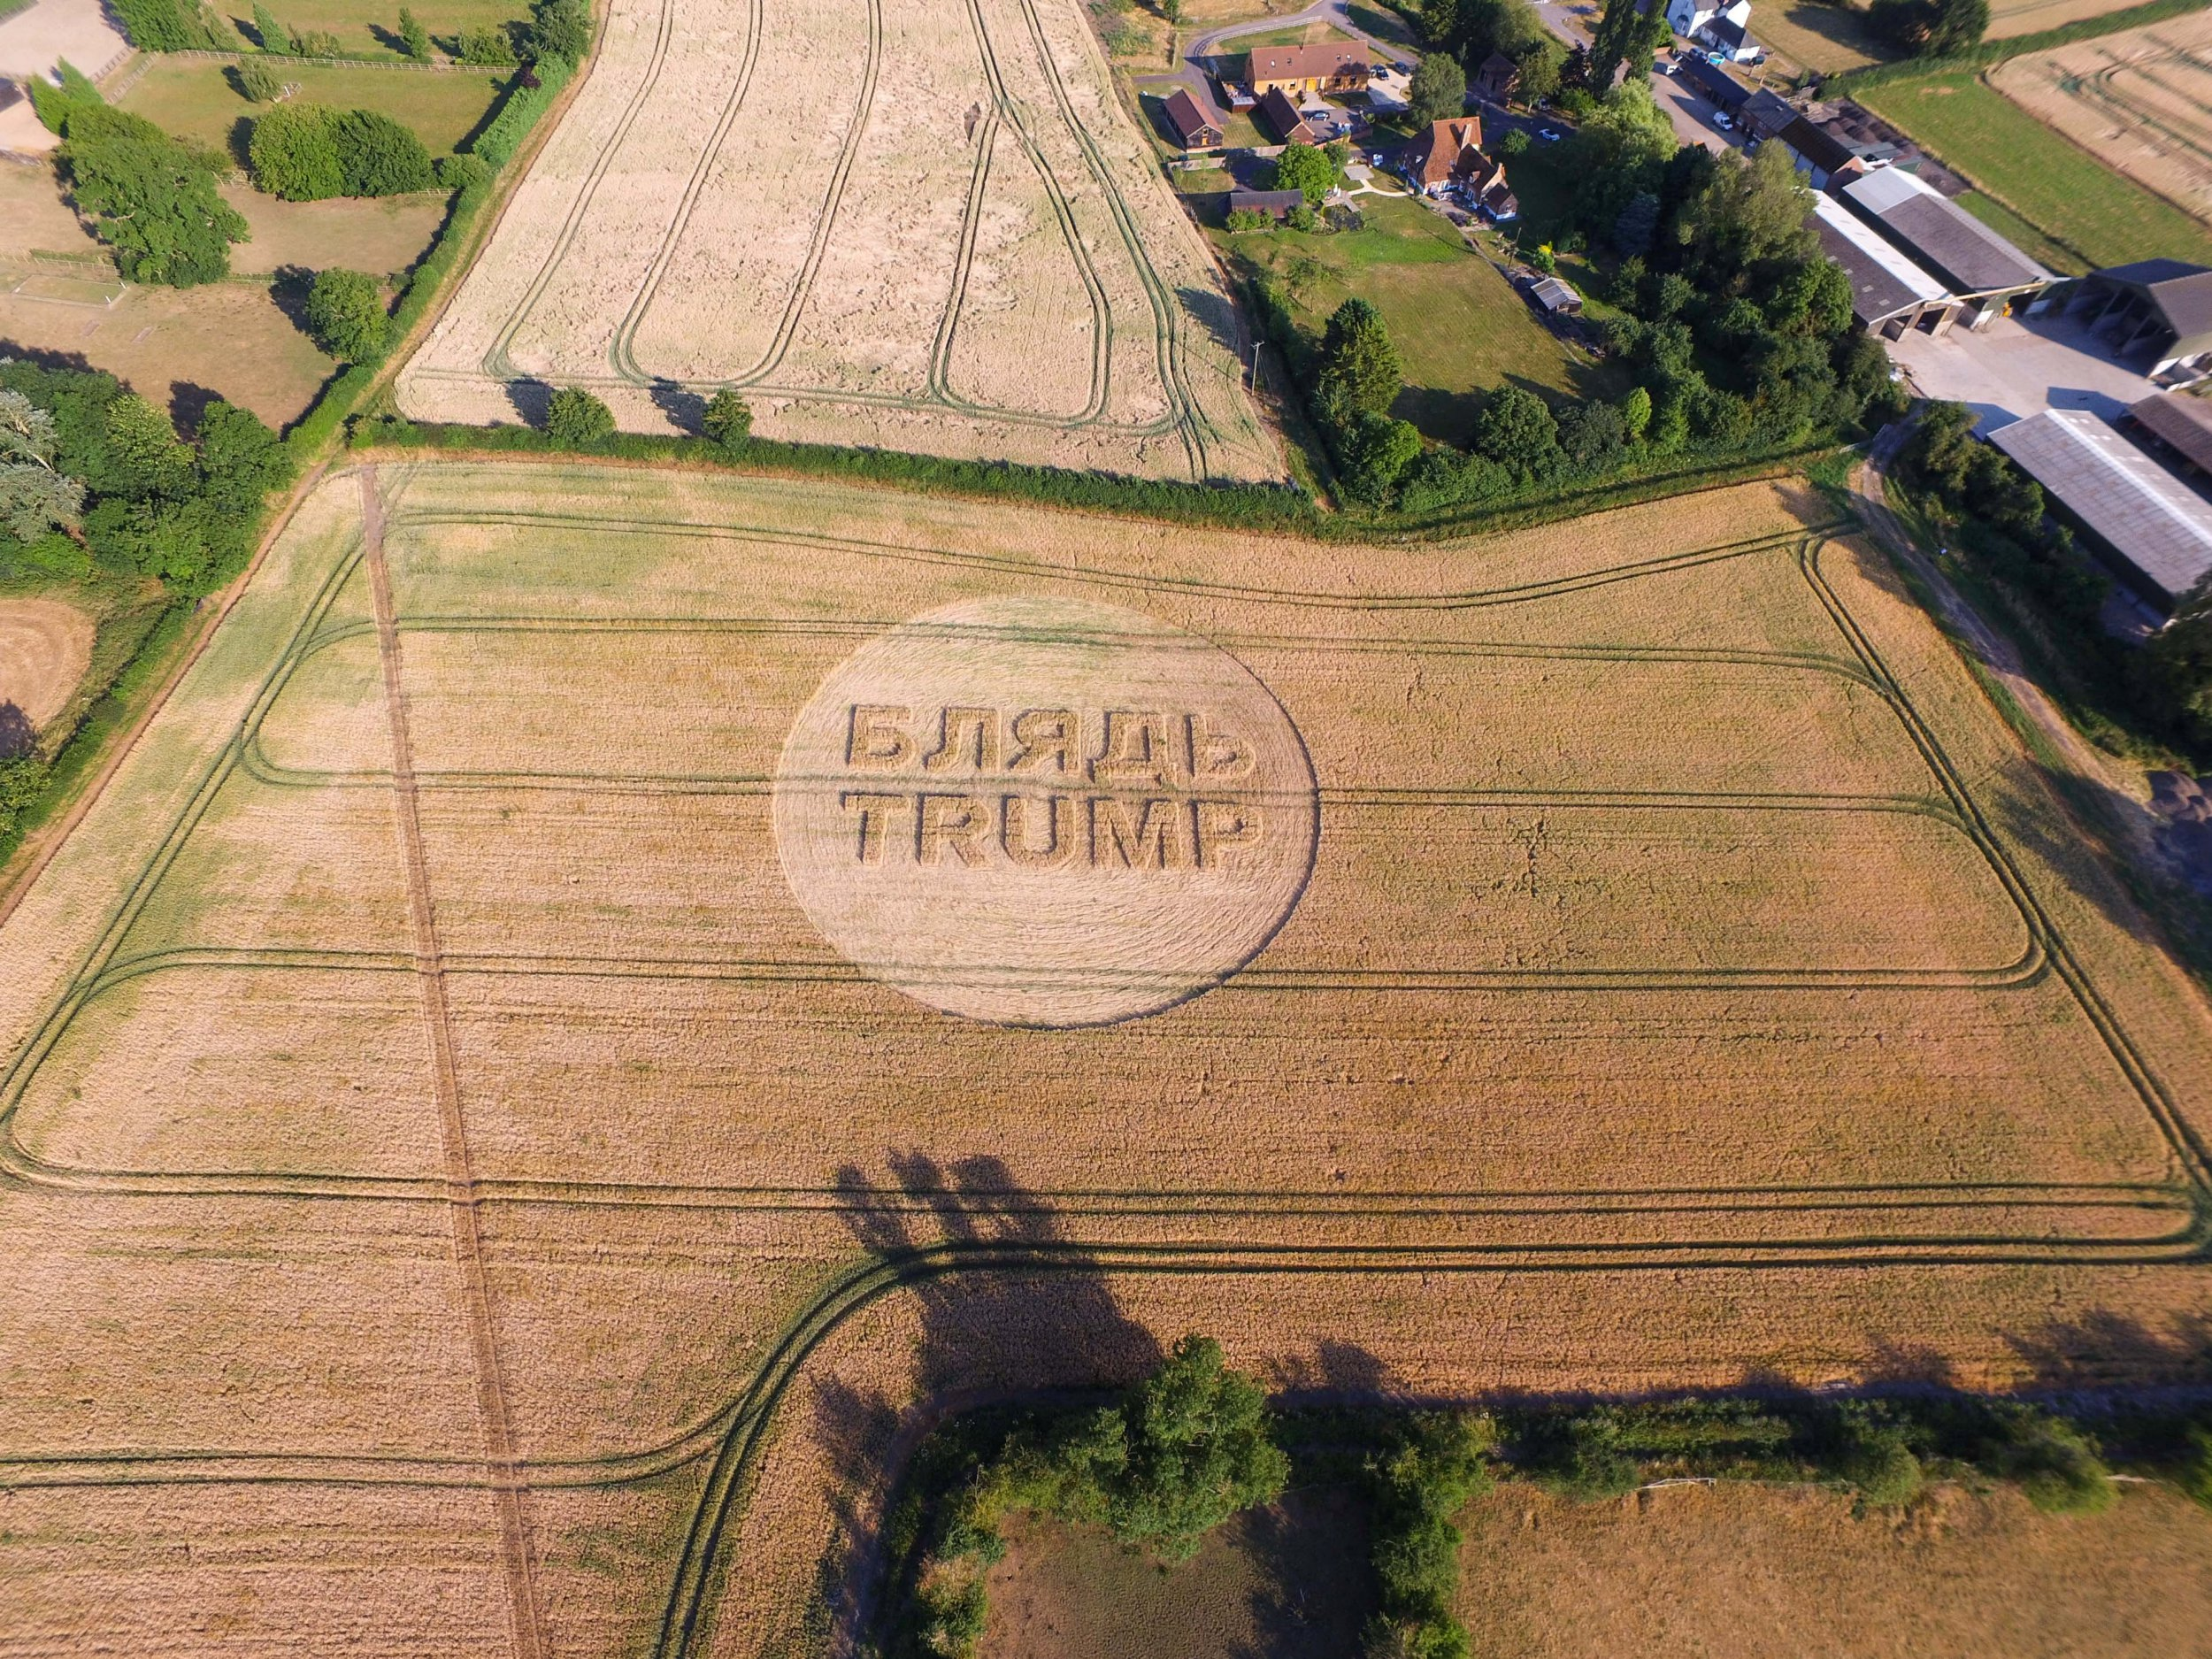 The US president will be welcomed onto British soil by a crop circle message which says ???Whore Trump???. See SWNS story SWTRUMP; President Trump will see the crop circle as he flies by helicopter to the Prime Minister???s country house on Friday. He is holding talks with Theresa May at the estate, Chequers in Buckinghamshire, before spending two days in Scotland. Drone images taken from 400ft show the message carefully shaped into farmland in Stoke Mandeville, Aylesbury. It says ????????????? Trump??? - with the first word a Russian translation for ???whore???. The people who wrote the expletive message are said to be ???crop circle experts who prefer to remain anonymous???.The photographer, who also asked to remain anonymous, said: ???The photos were taken from 400ft and the crop circle is on a farm in Stoke Mandeville, Aylesbury